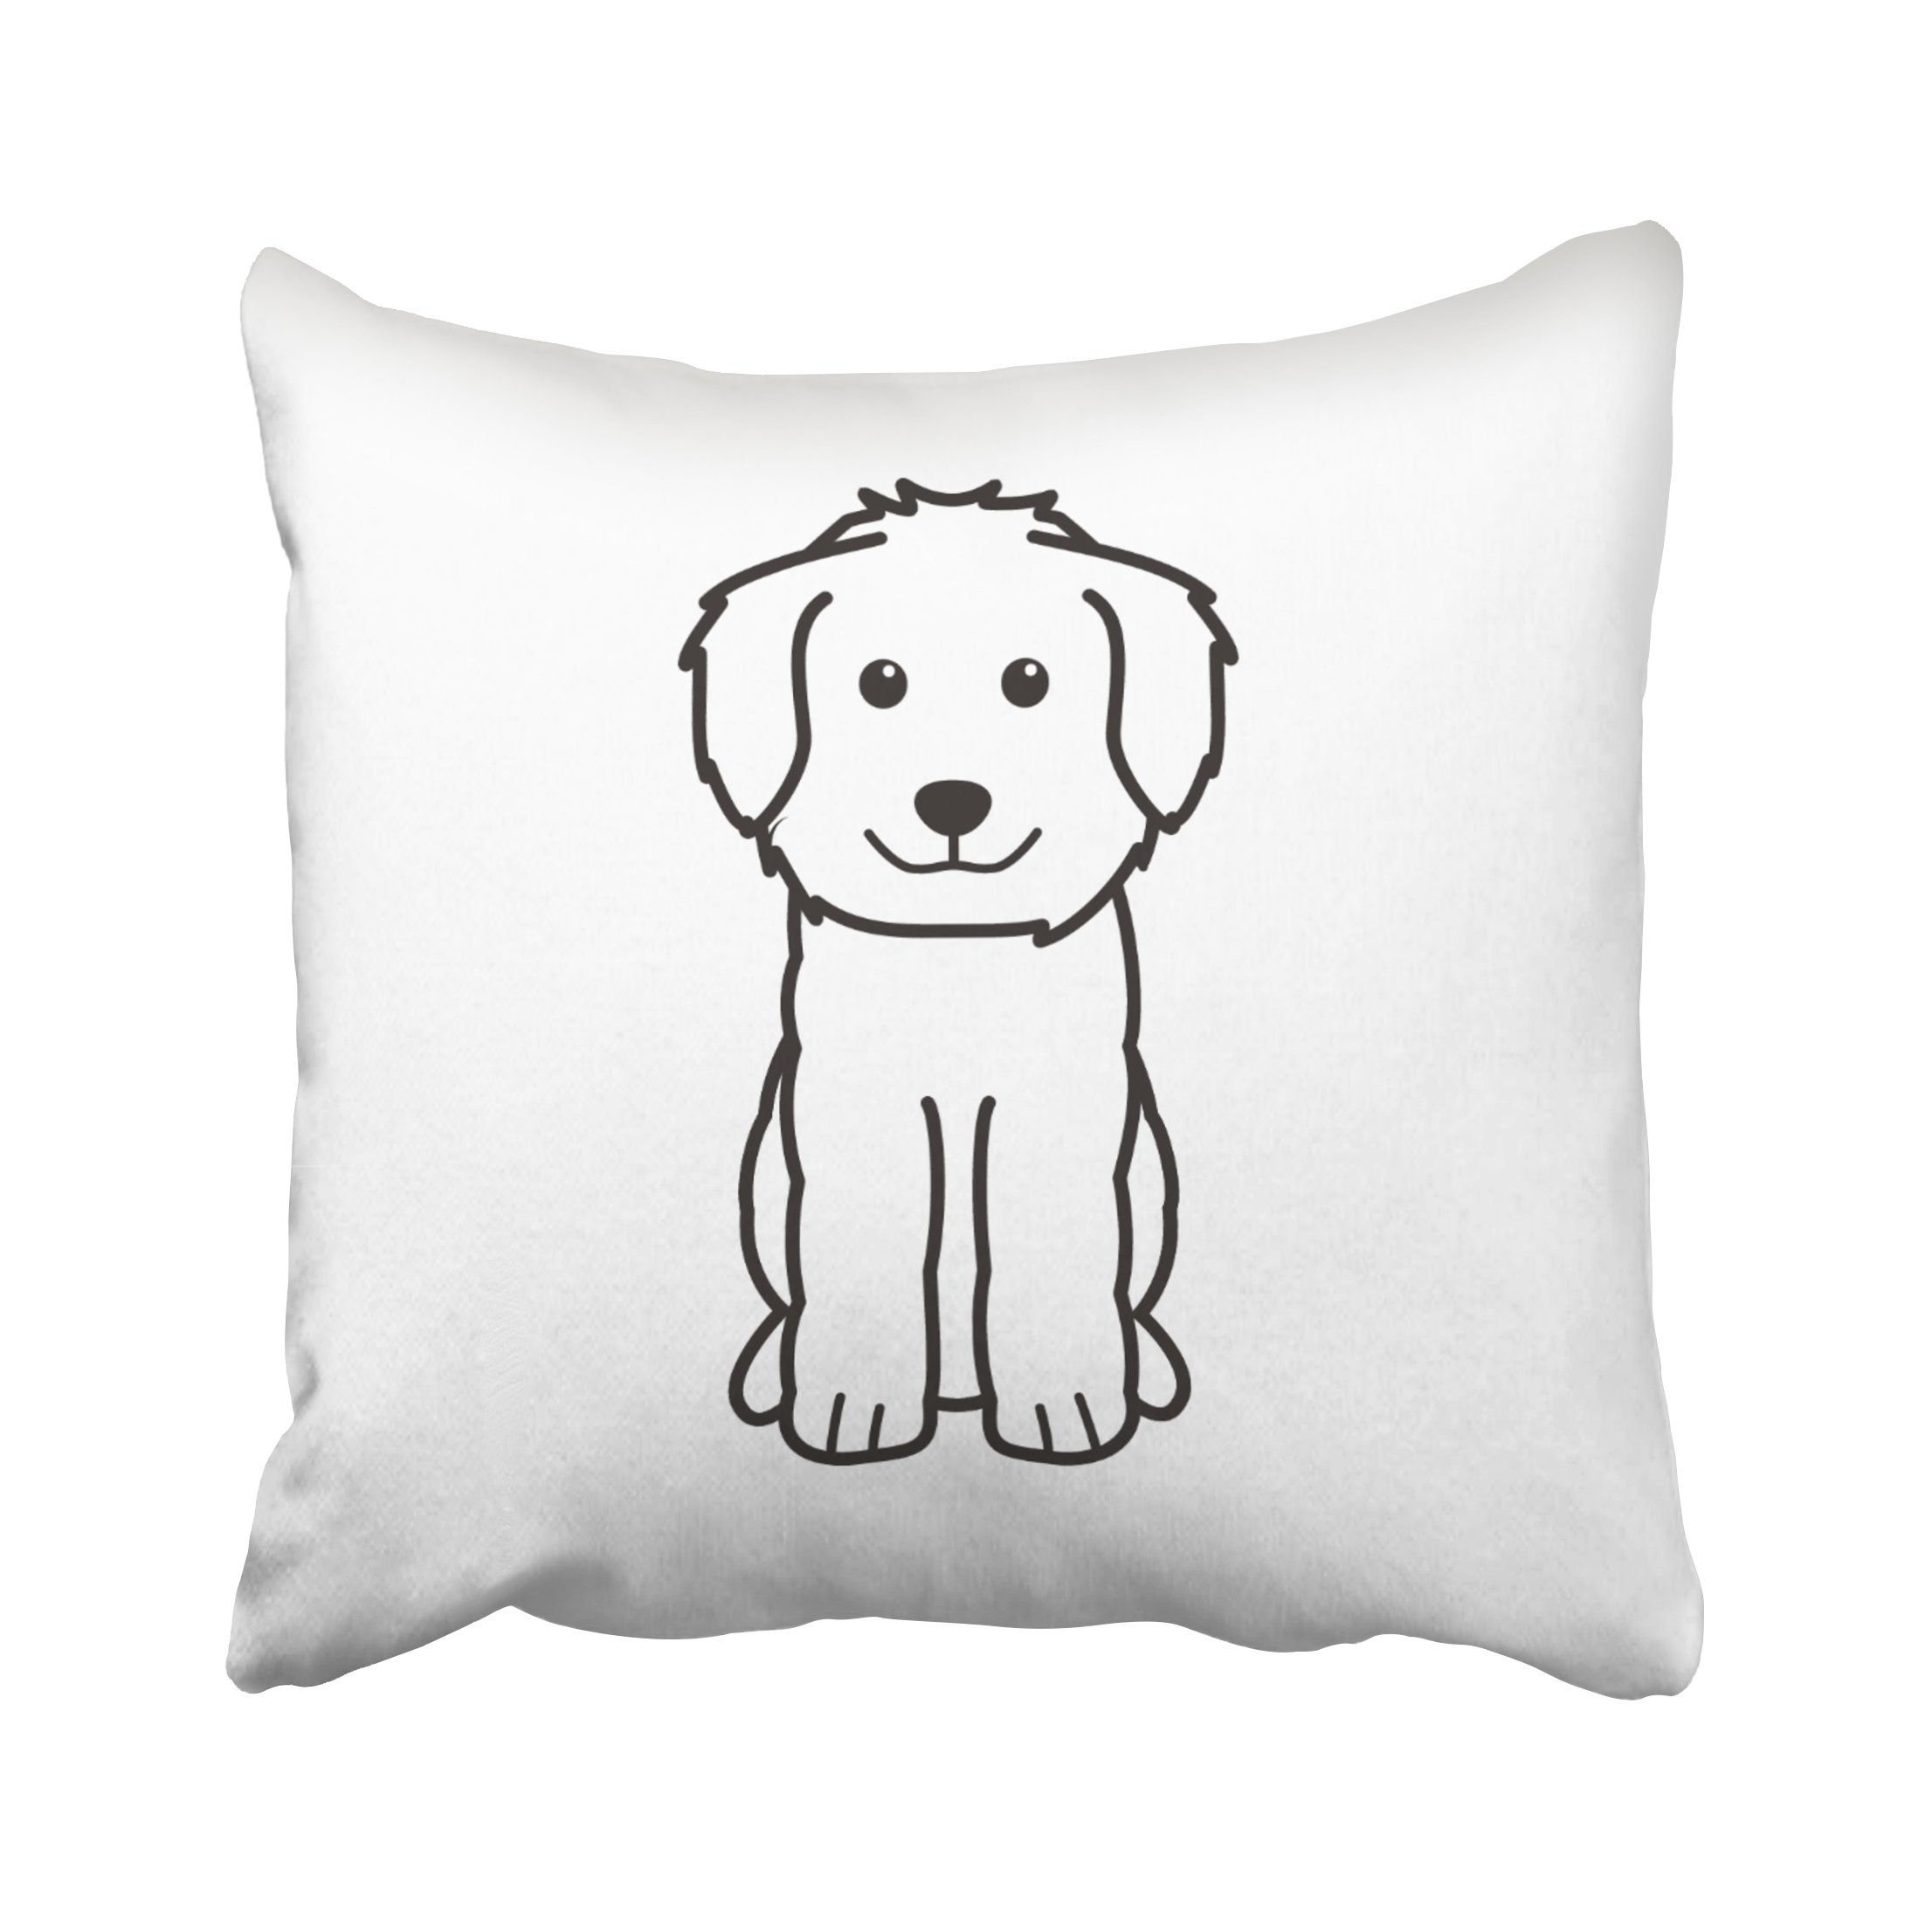 ONELZ Dog Square Decorative Throw Pillow Case, Fashion Style Zippered Cushion Pillow Cover (20X20 inch)